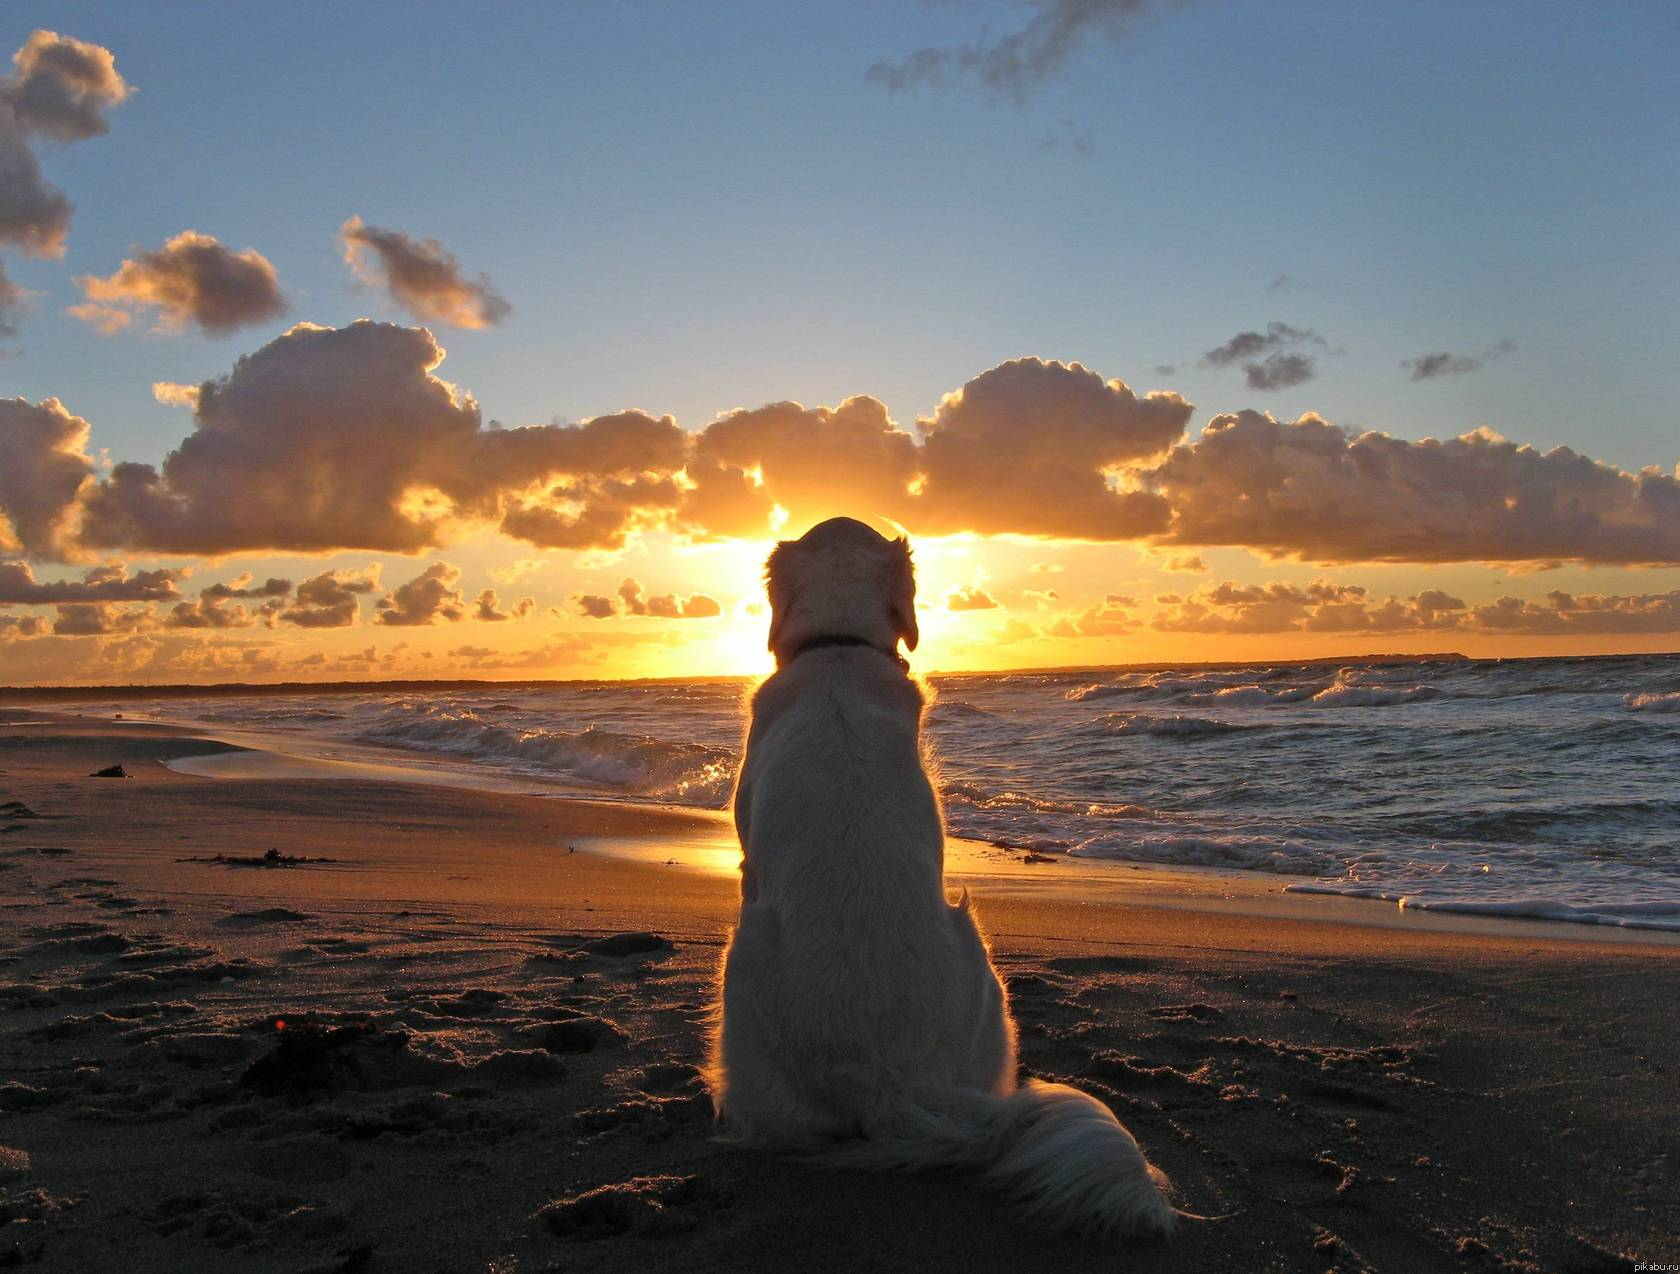 3733 Dog HD Wallpapers  Background Images  Wallpaper Abyss